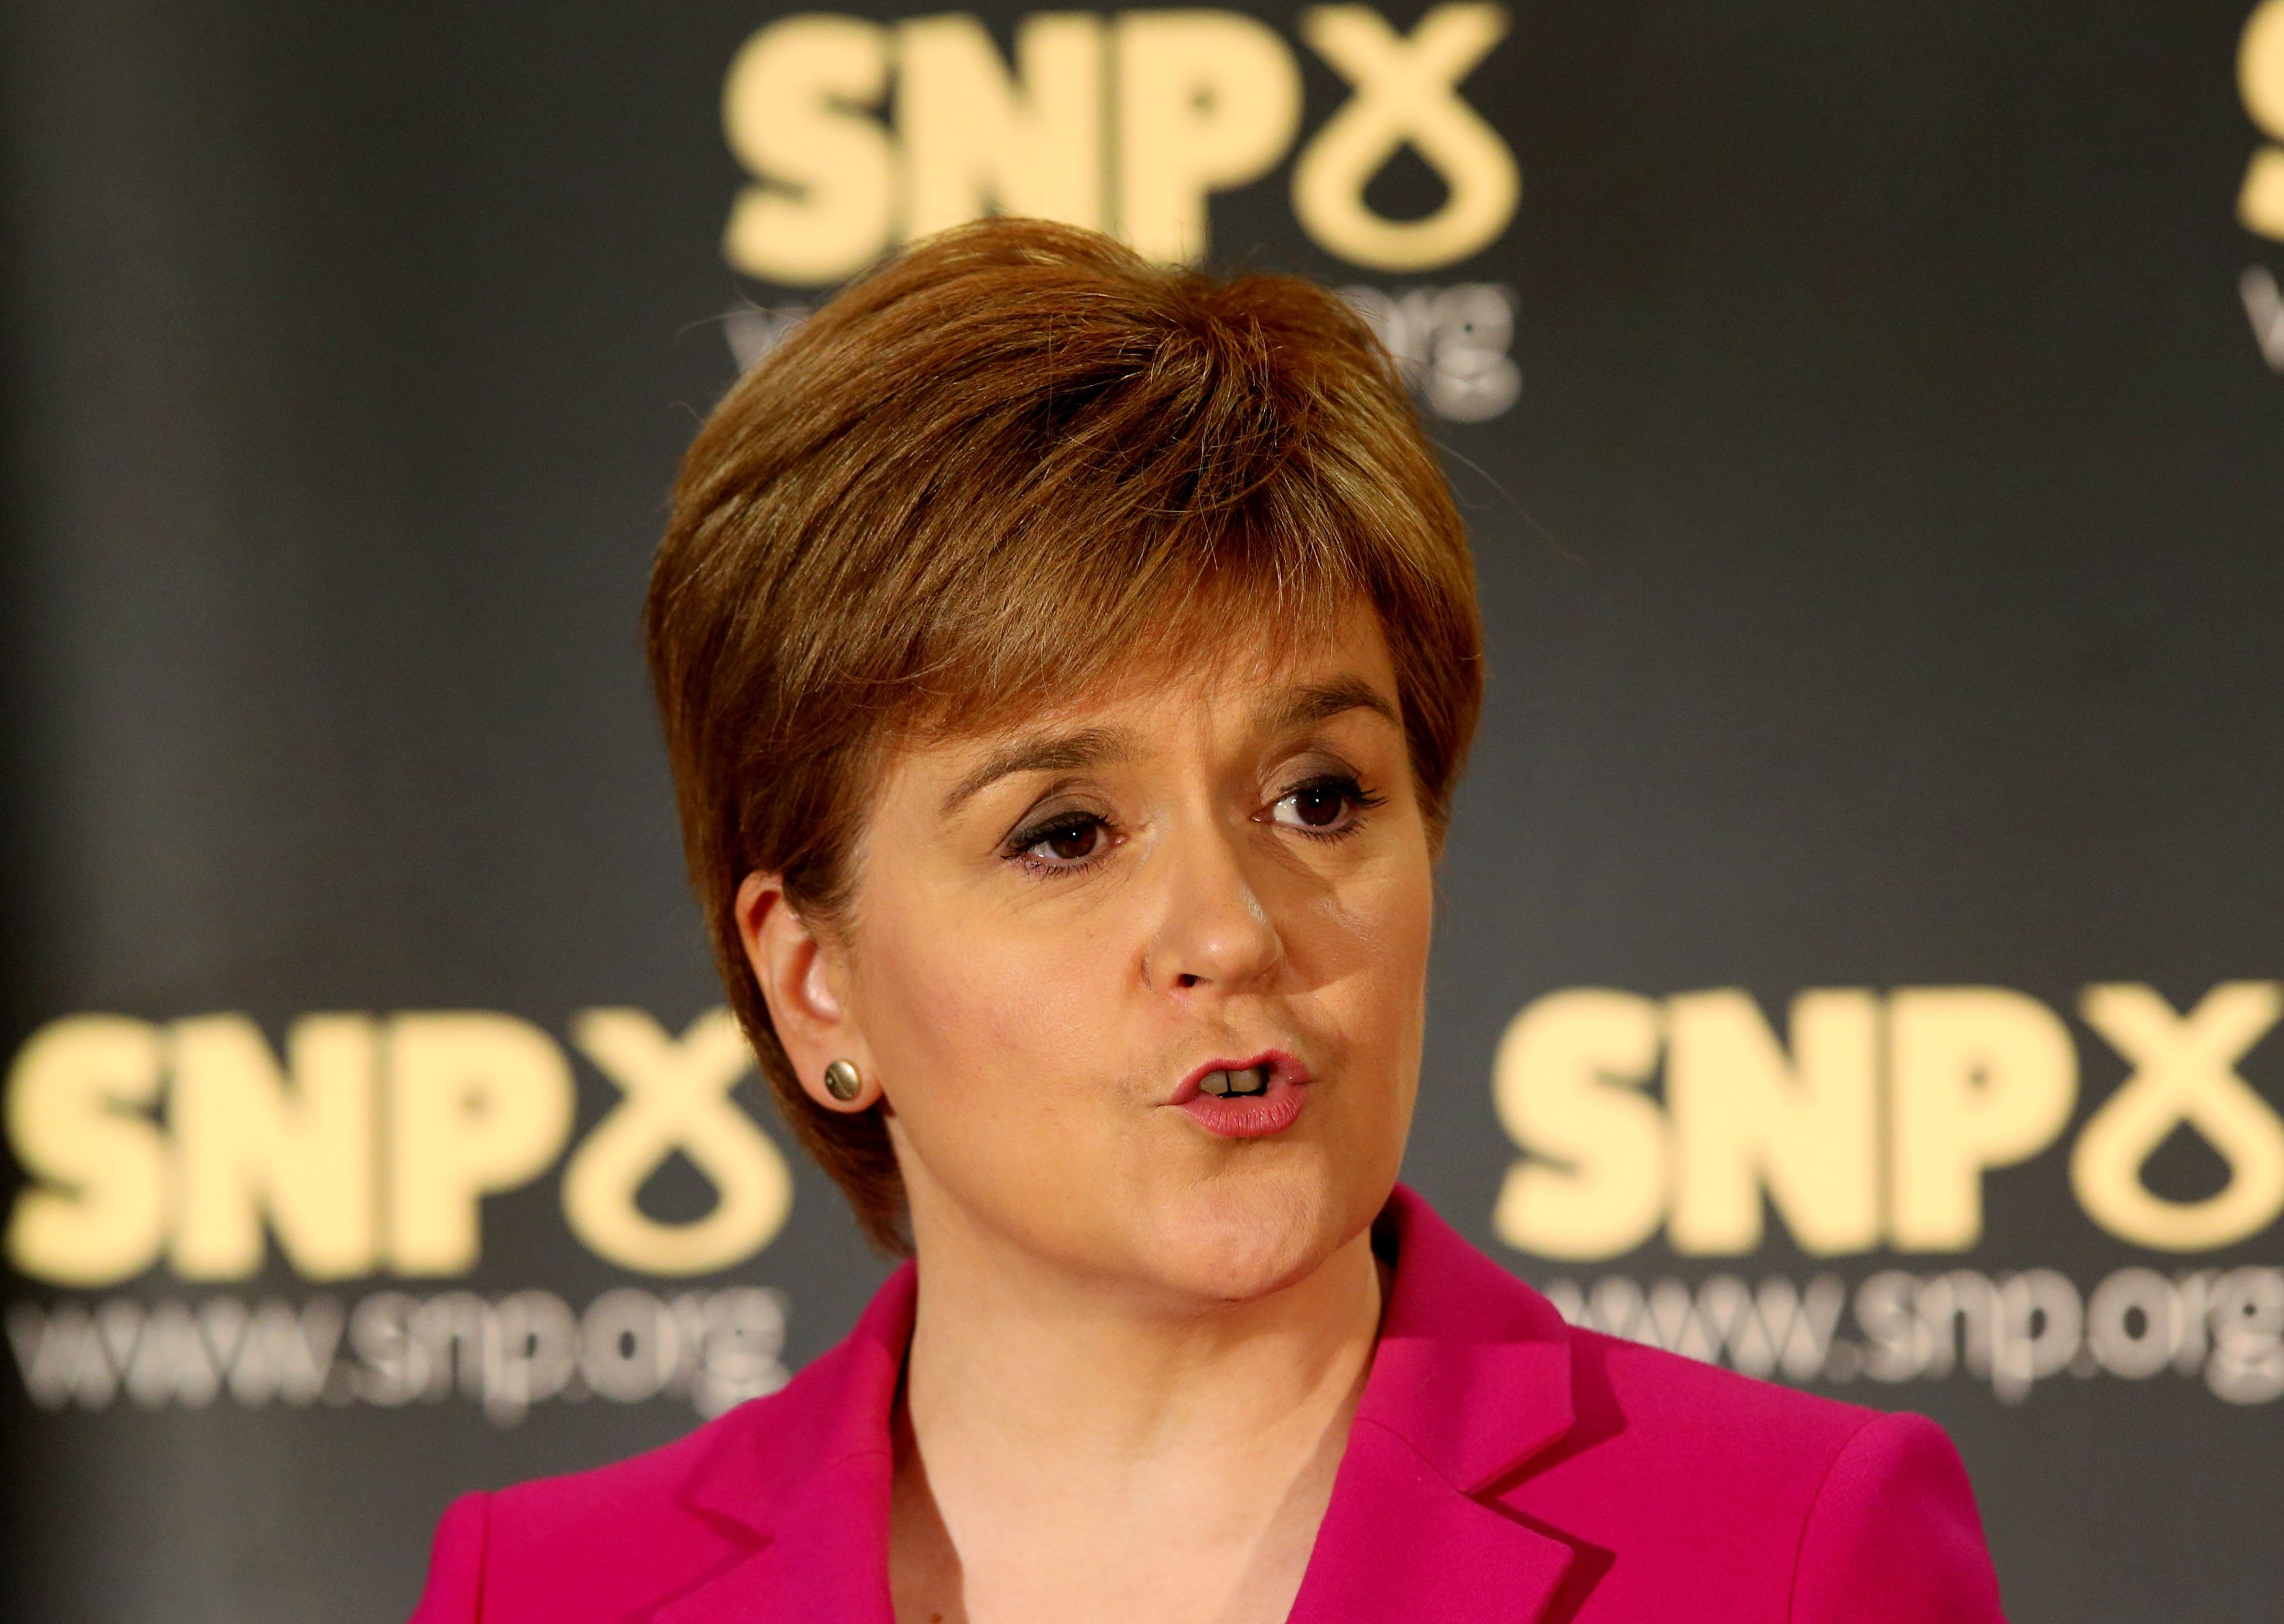 Scotland's First Minister Nicola Sturgeon has revealed for the first time that she had a miscarriage in January 2011 (file photo)